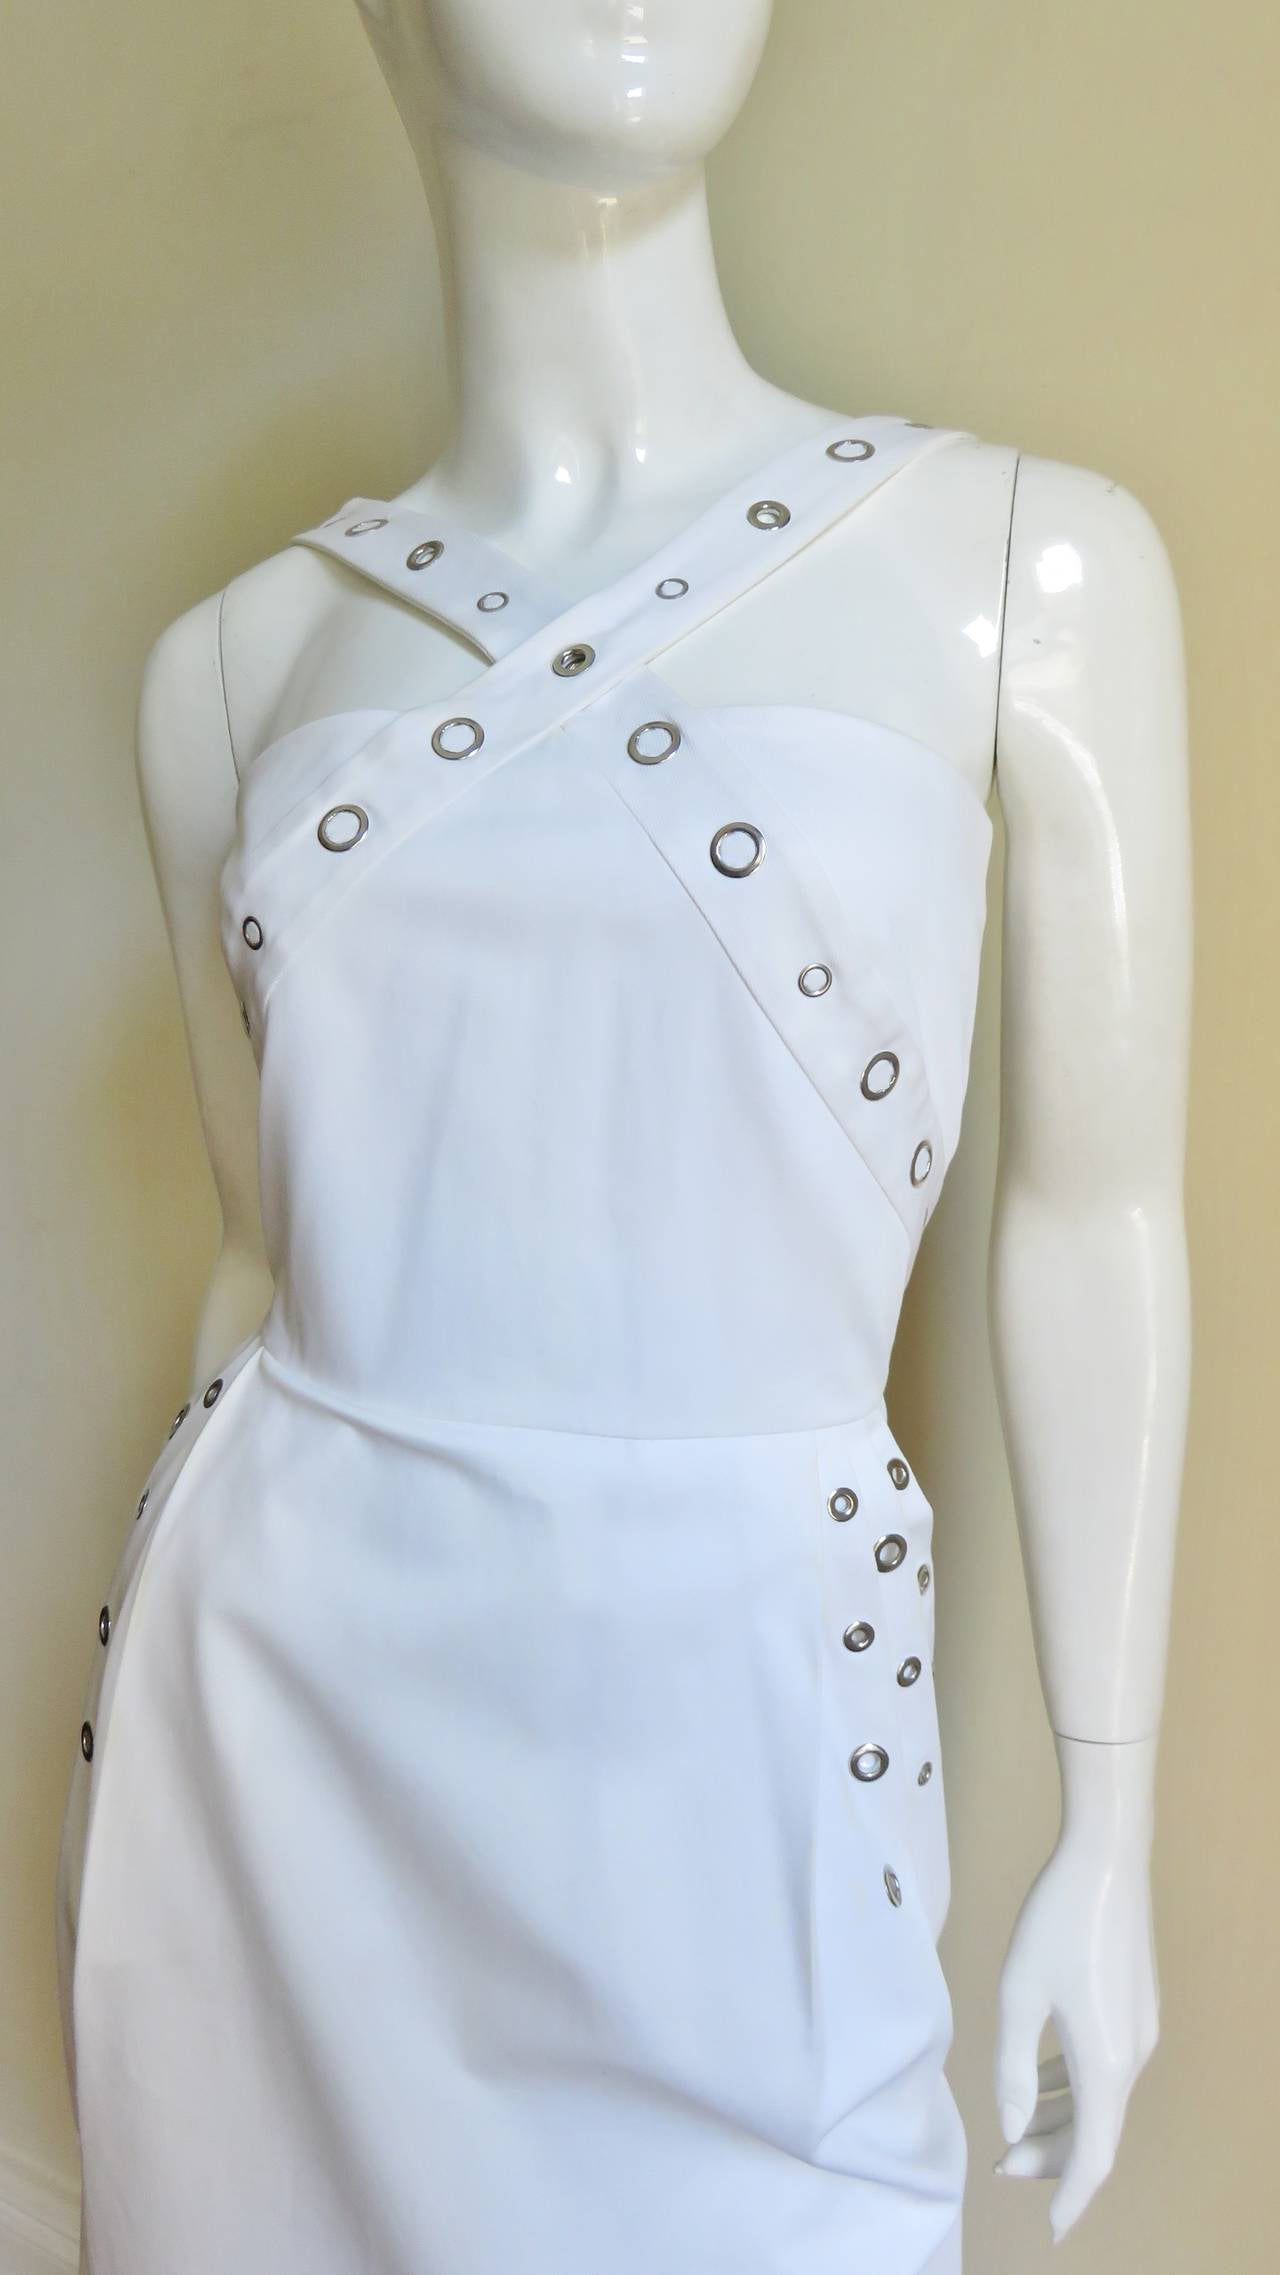 A great white dress from Jean Paul Gaultier in a cotton twill with a little stretch. The fitted bodice has straps crossing front and back. The skirt is semi fitted with 4 pleats at the at the waist the last of which forms hip pockets.  That extra